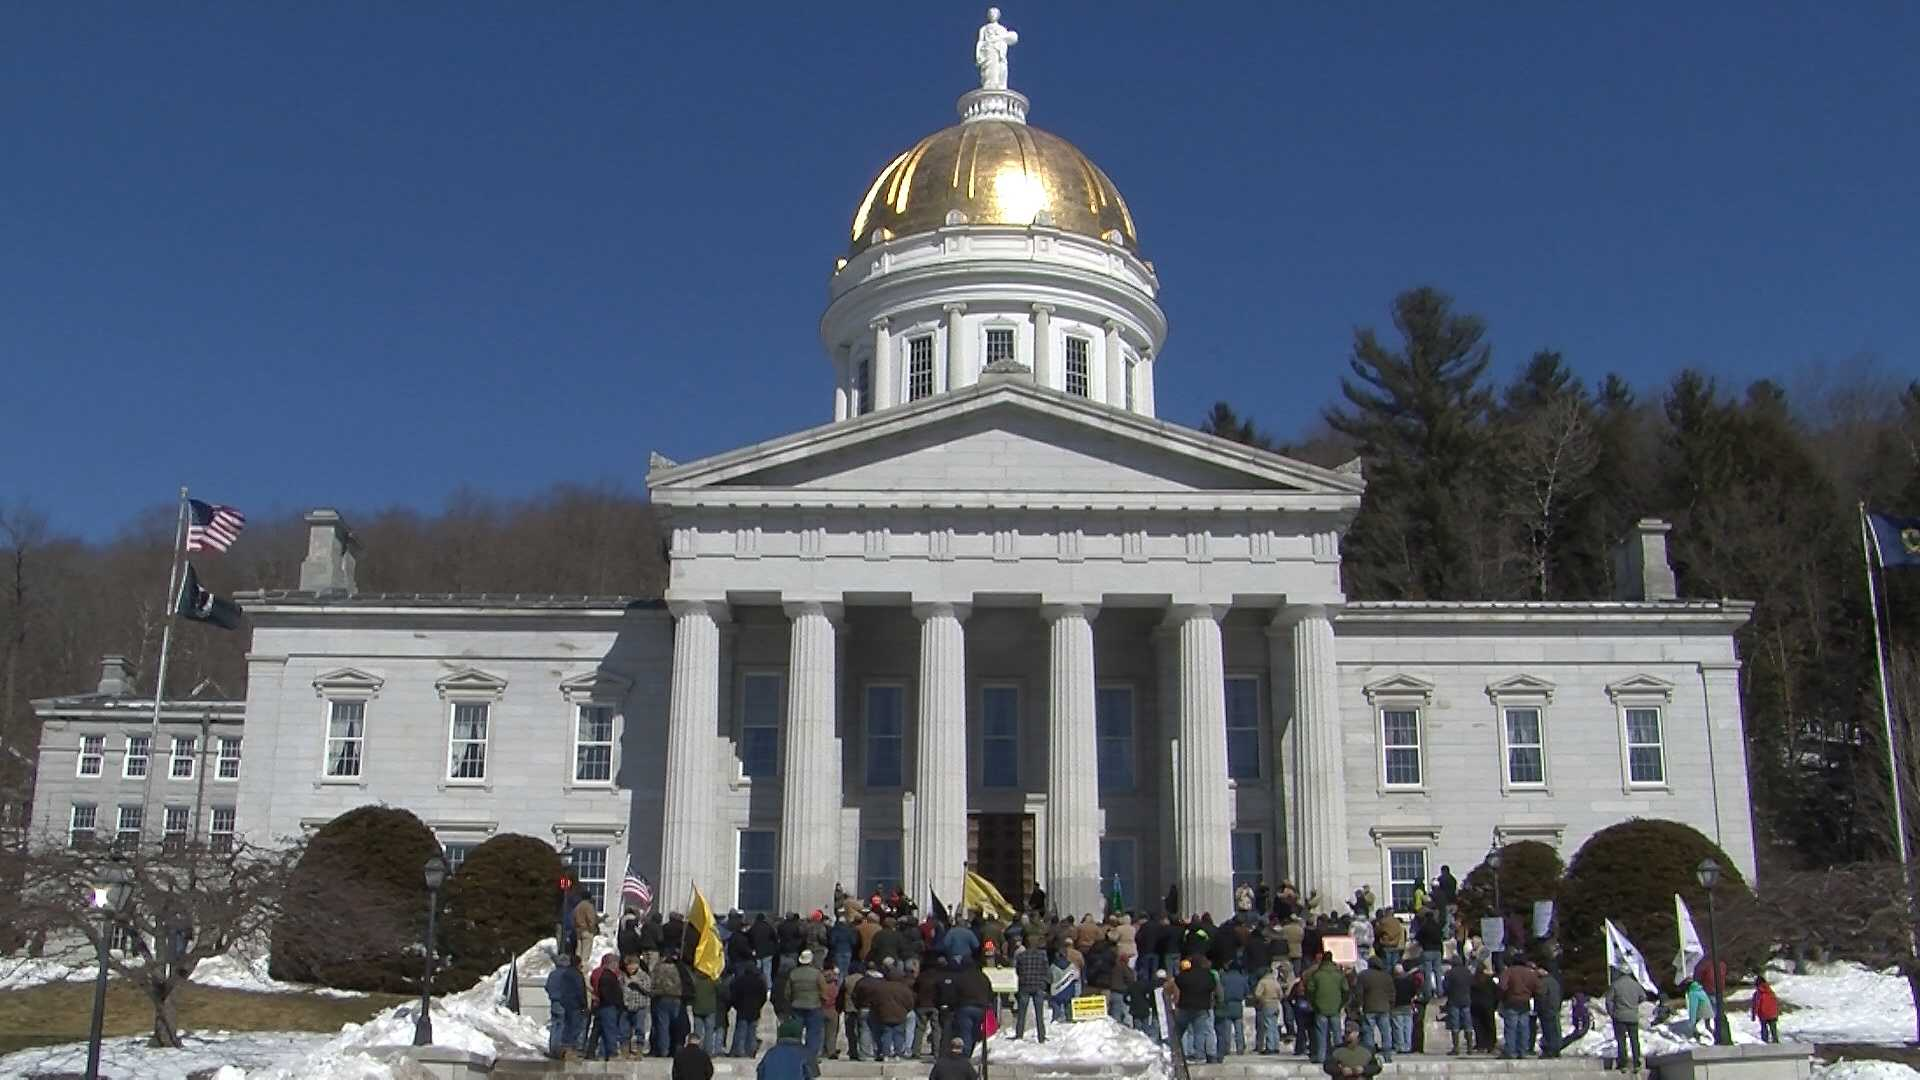 About 800 people gathered at the Vermont Statehouse on Sunday to talk gun rights. The rally comes as Burlington voters said 'yes' to three charter changes that would put restriction on firearms.